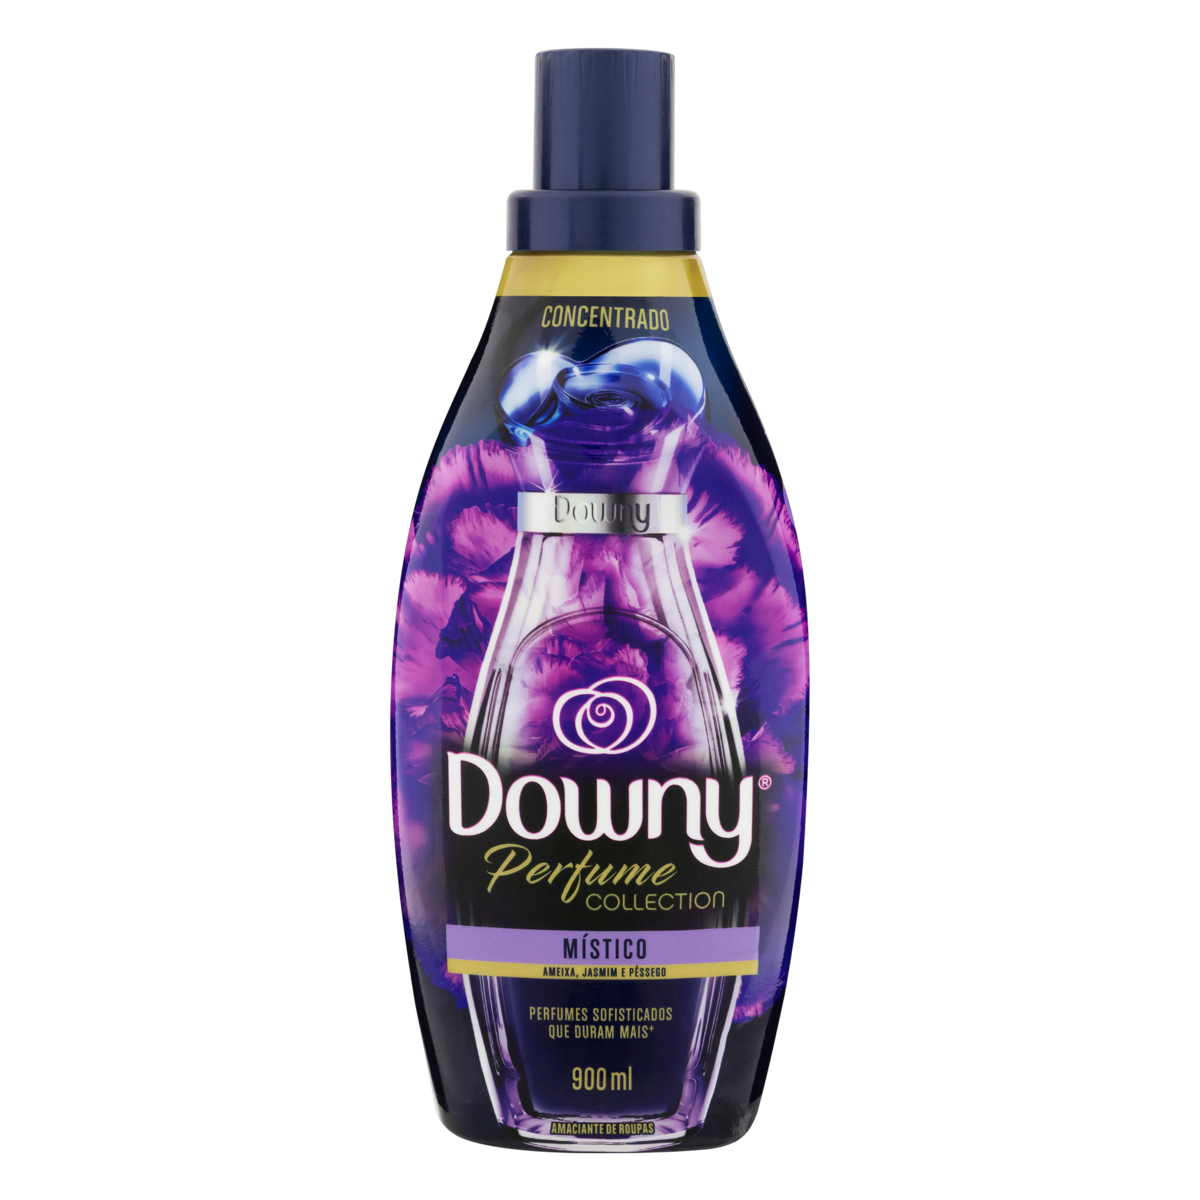 7500435160001 - AMACIANTE DE ROUPA CONCENTRADO MÍSTICO DOWNY PERFUME COLLECTION FRASCO 900ML